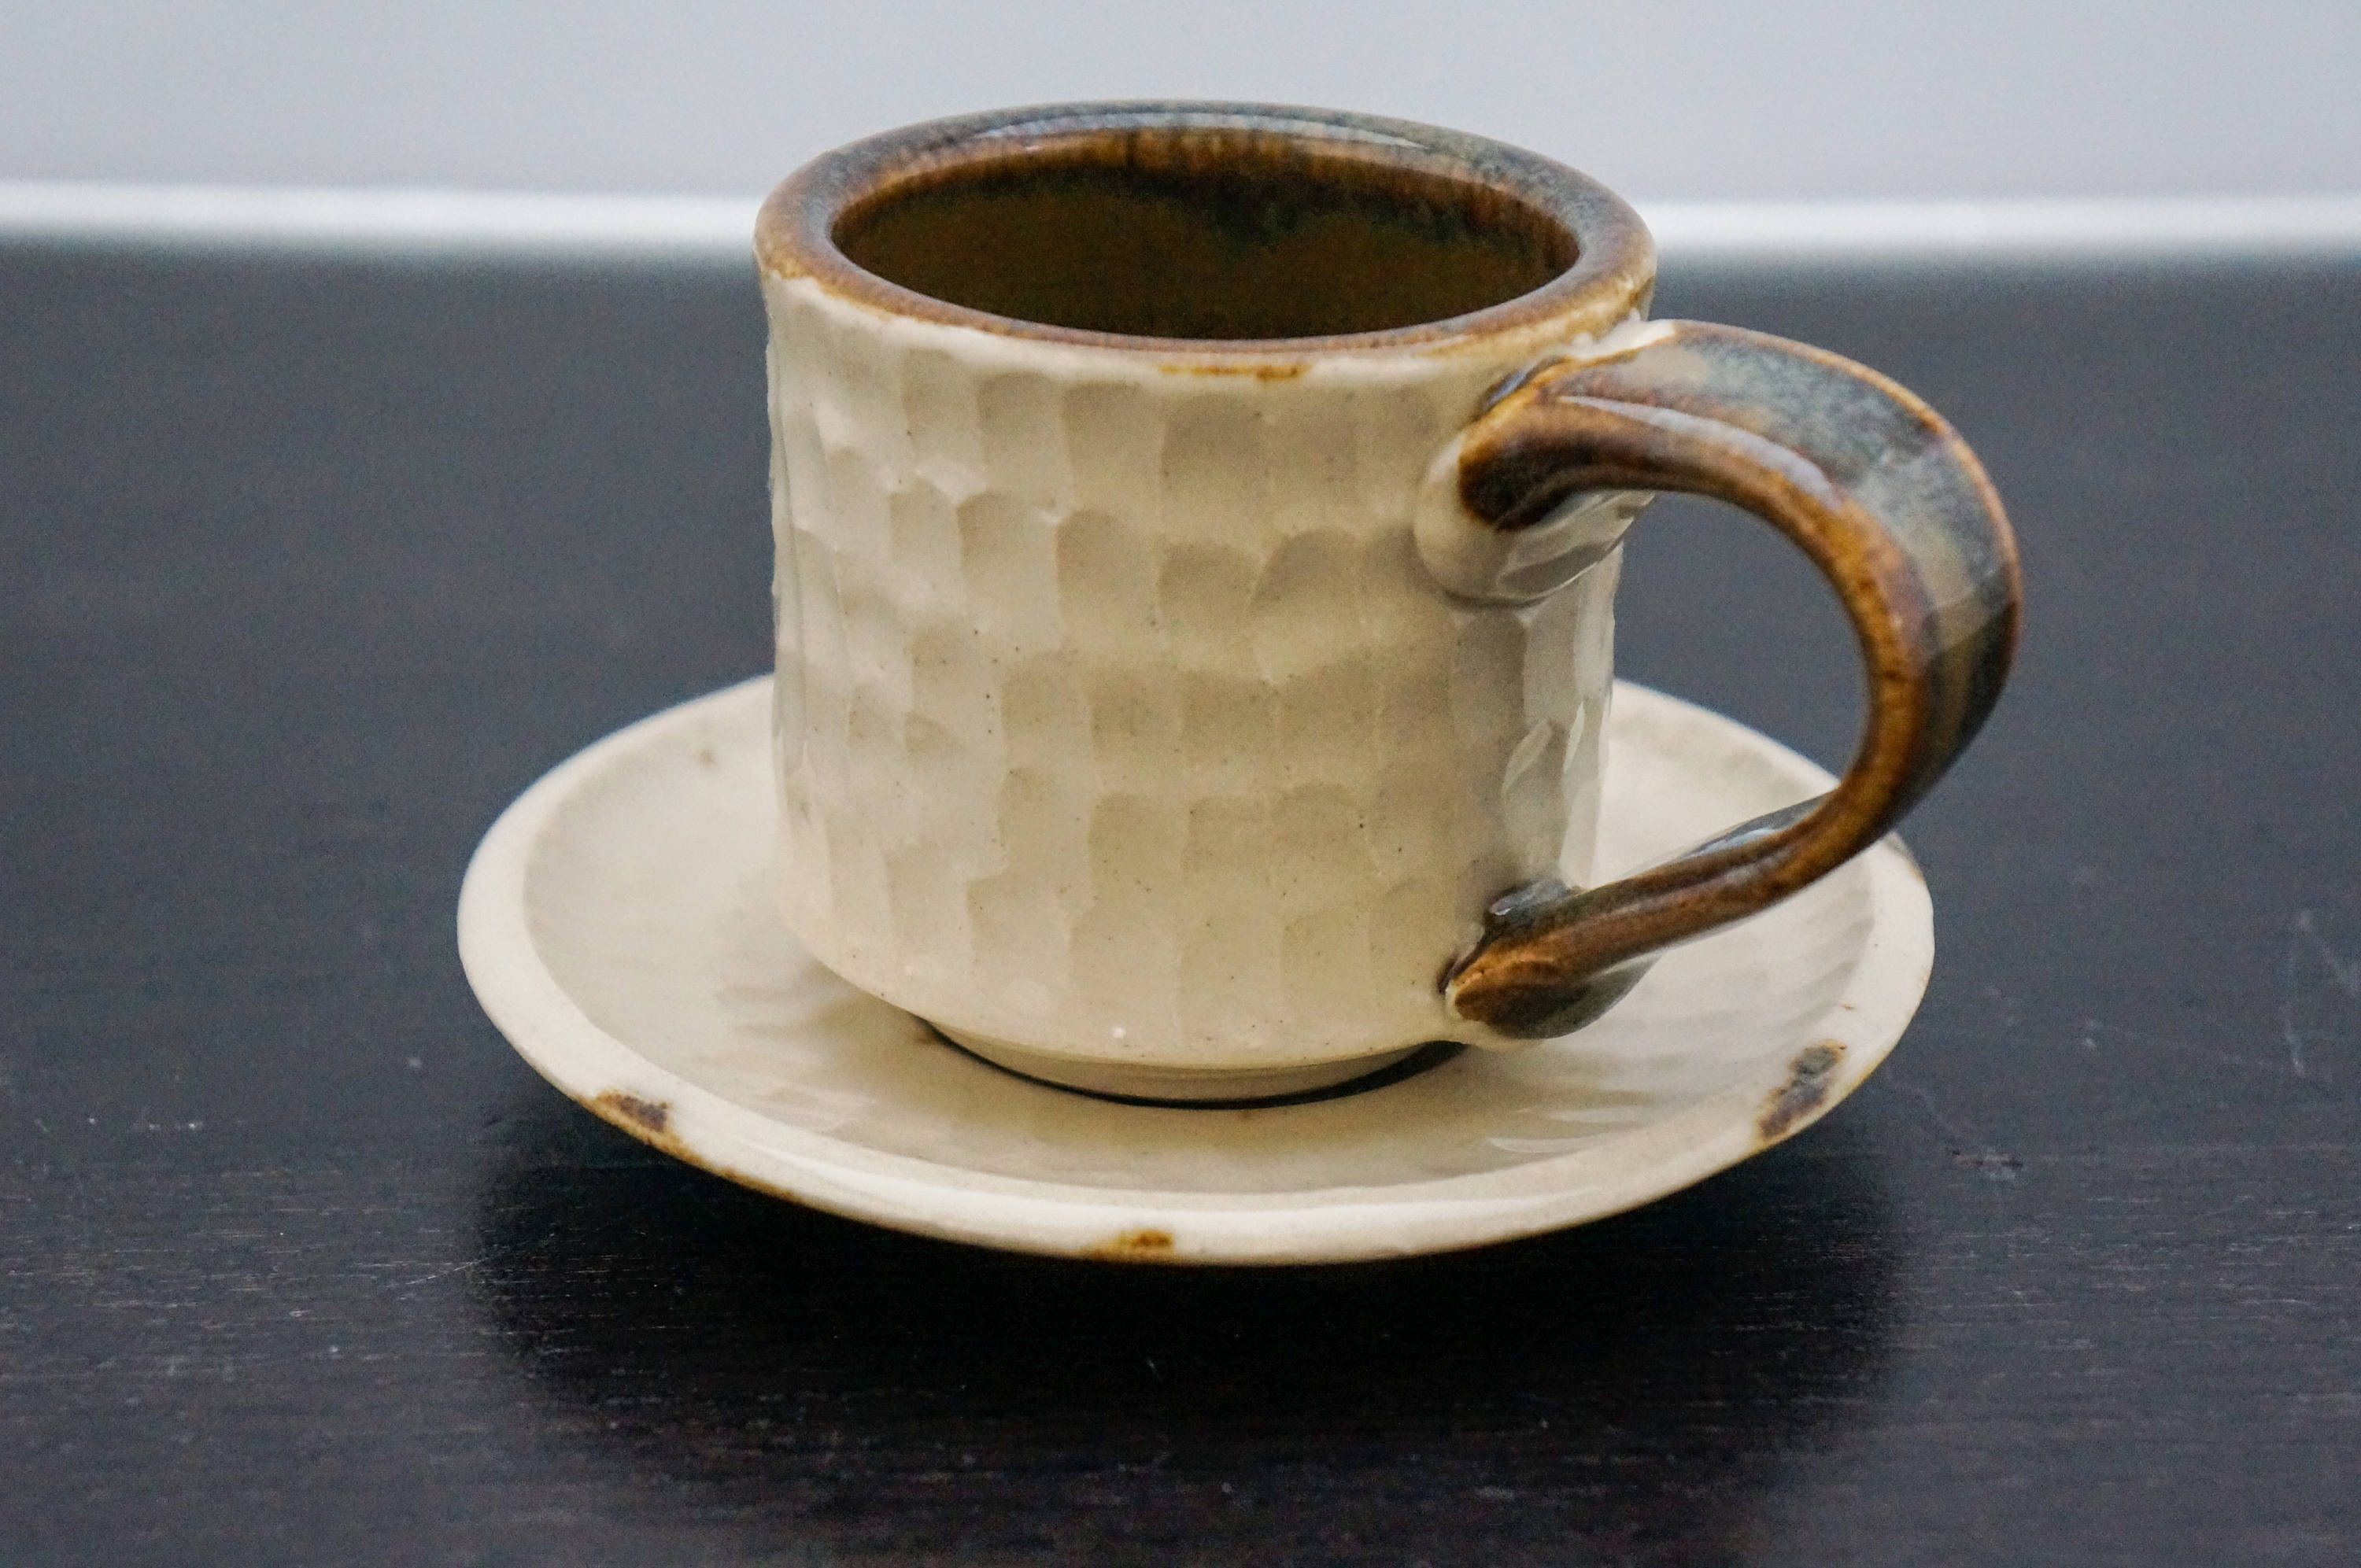 This Is A Beautiful Ceramic Espresso Cup Set That Will Hold Your Cuccino Perfectly Or Be Small Coffee